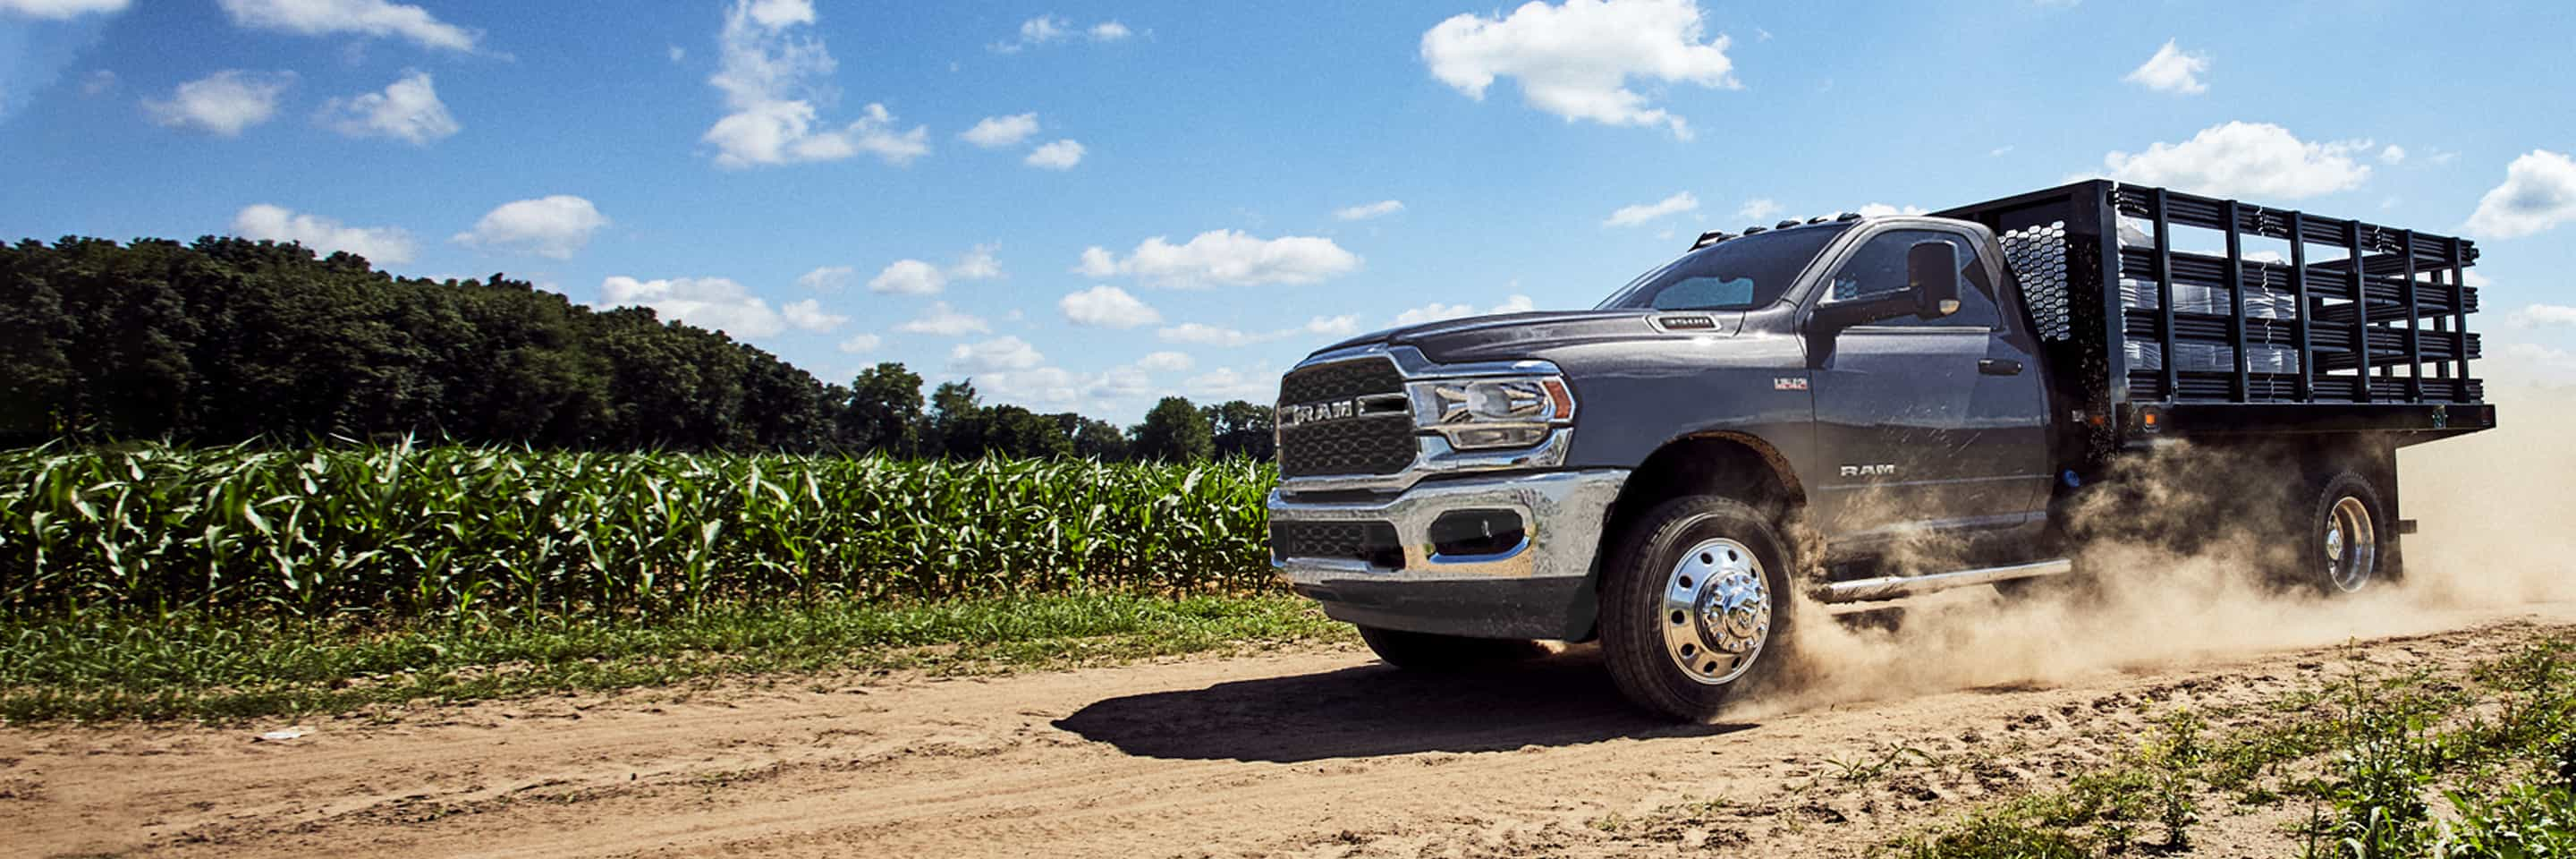 The 2020 Ram Chassis Cab kicking up dust as it is driven through a cornfield.